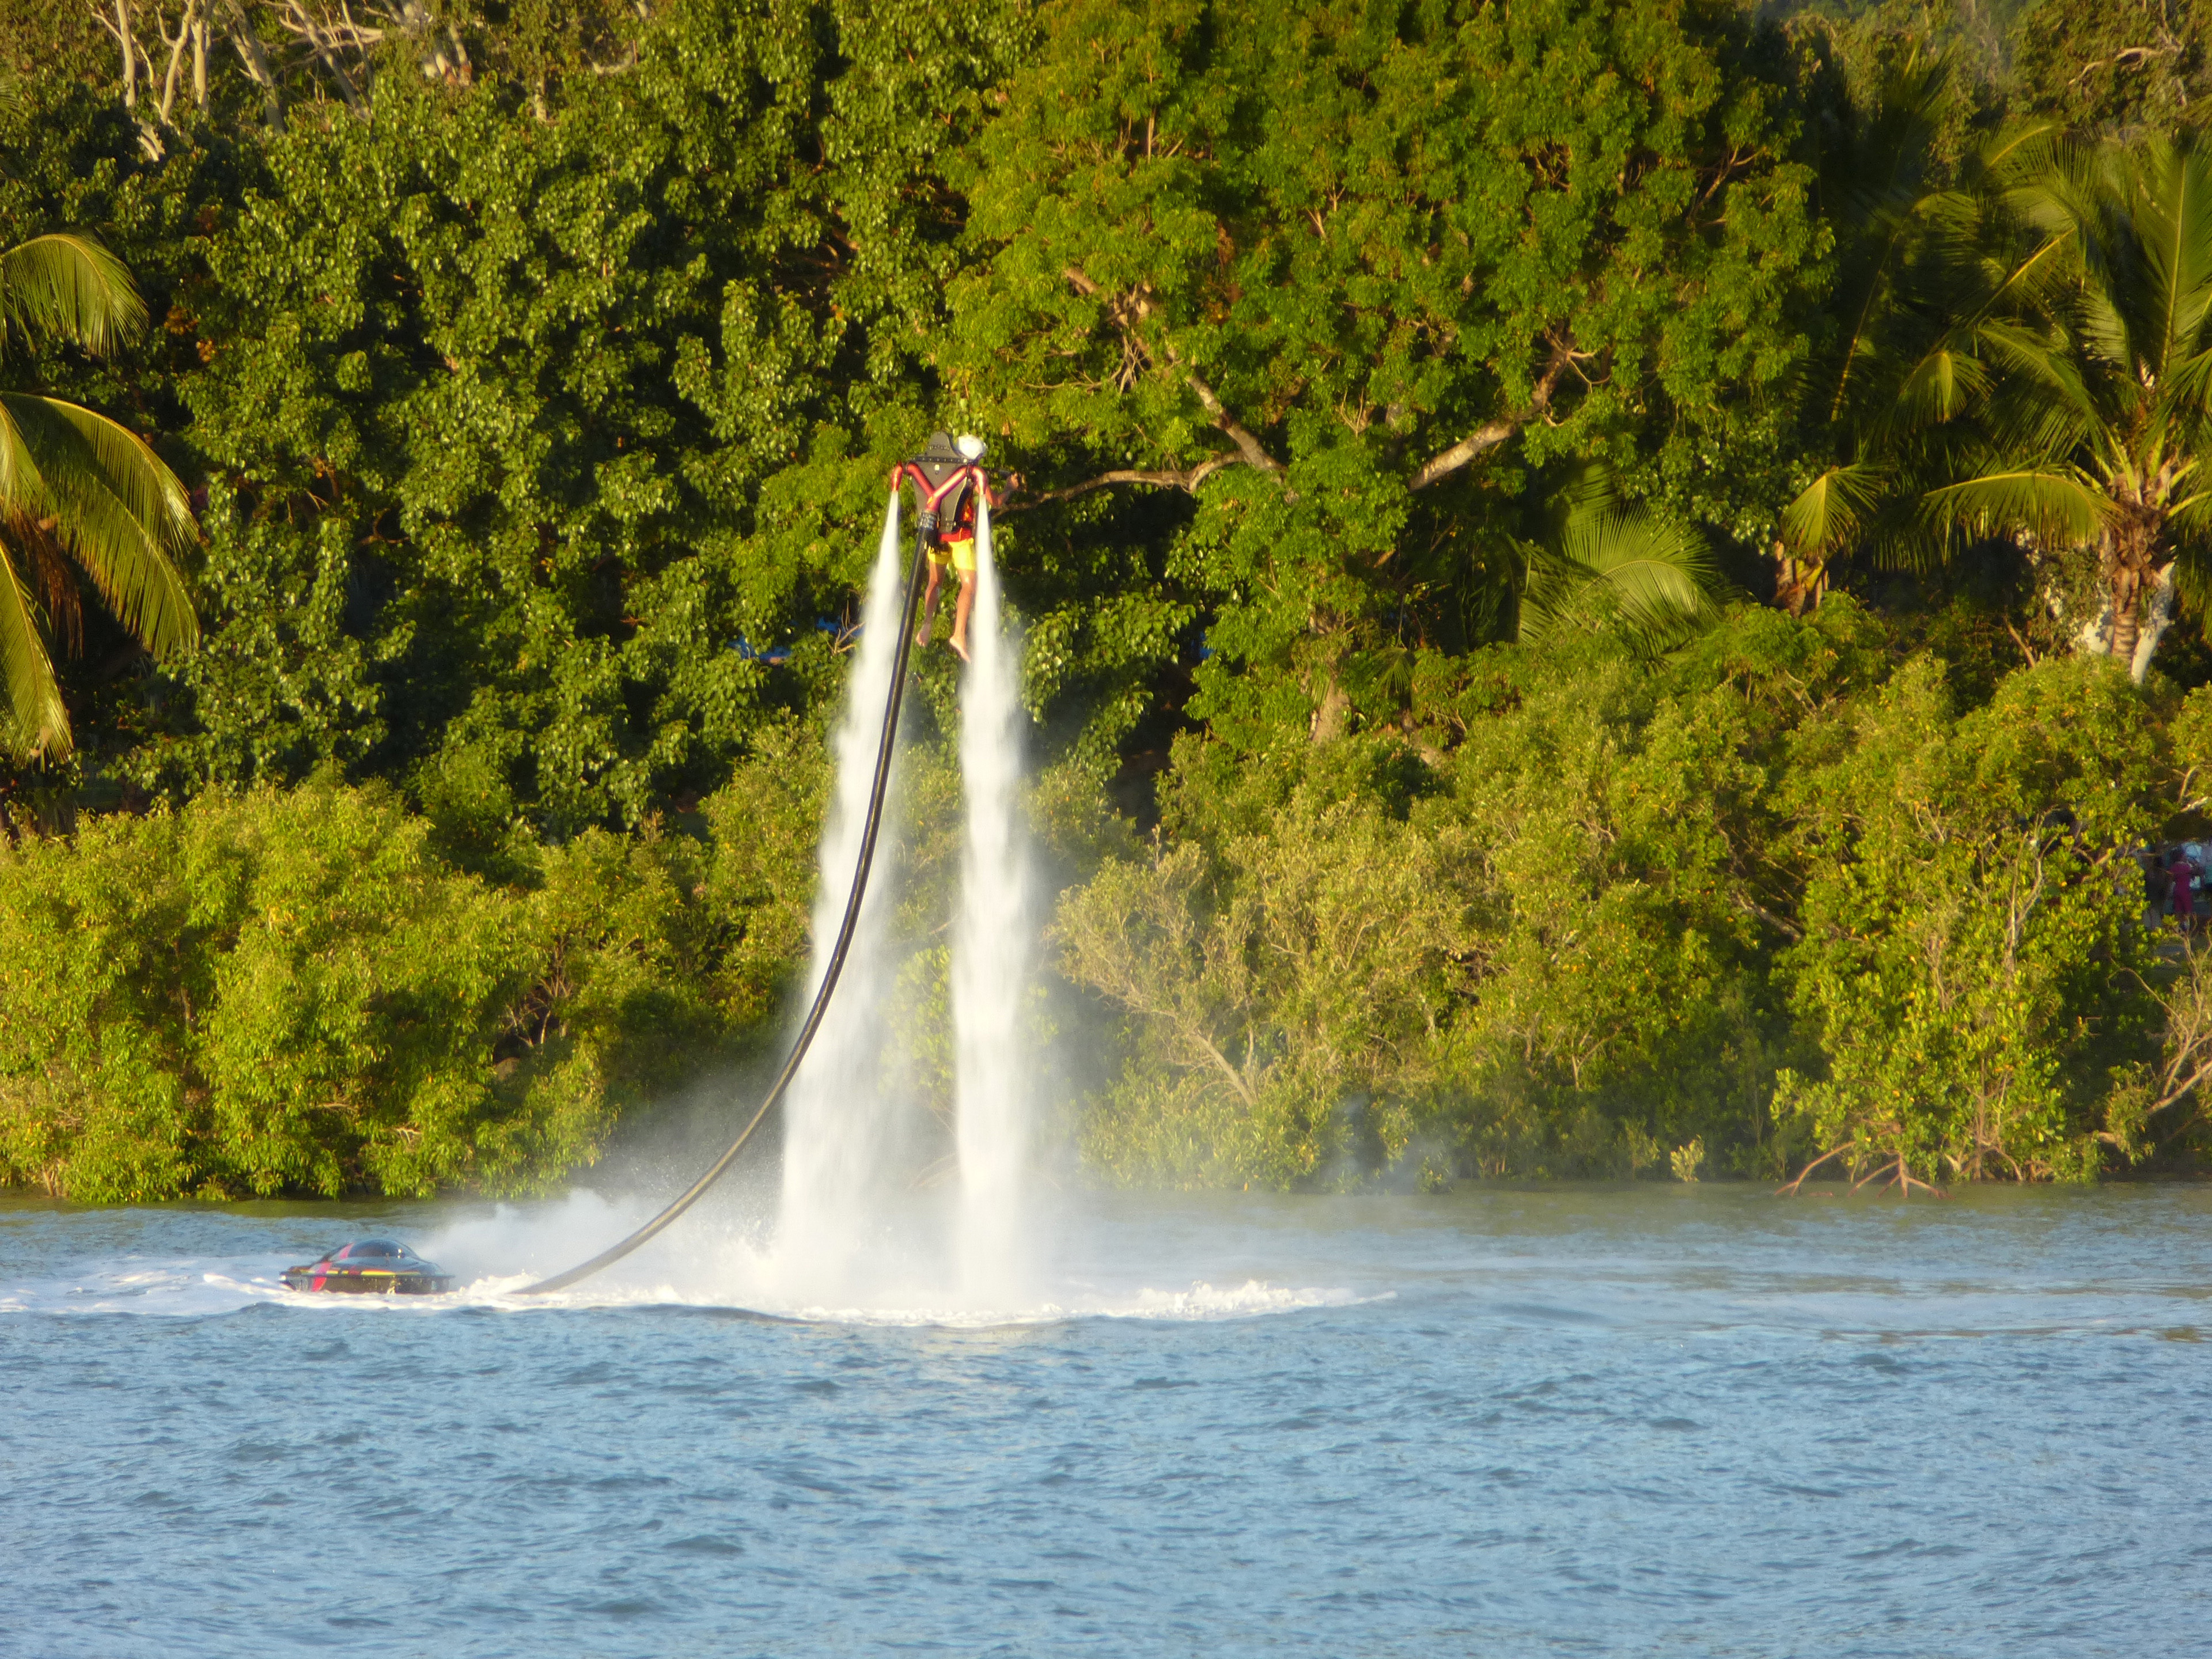 Jet Boarding or Fly Boarding, hovering in the air on a stream of high pressue water from a jetski